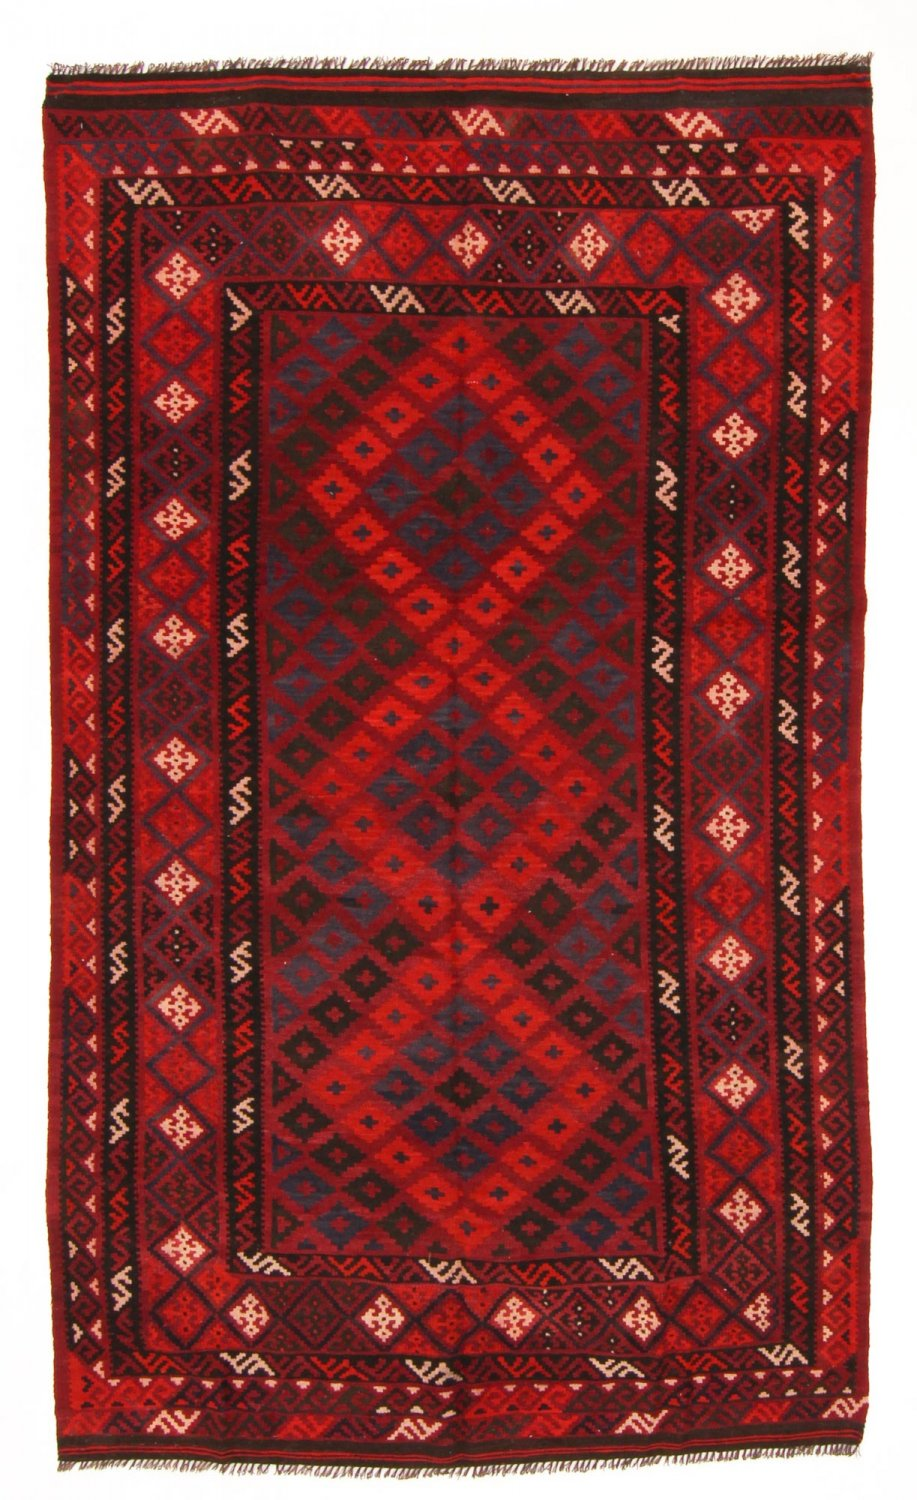 kilim rug afghan 263 x 152 cm kilim rugs red. Black Bedroom Furniture Sets. Home Design Ideas